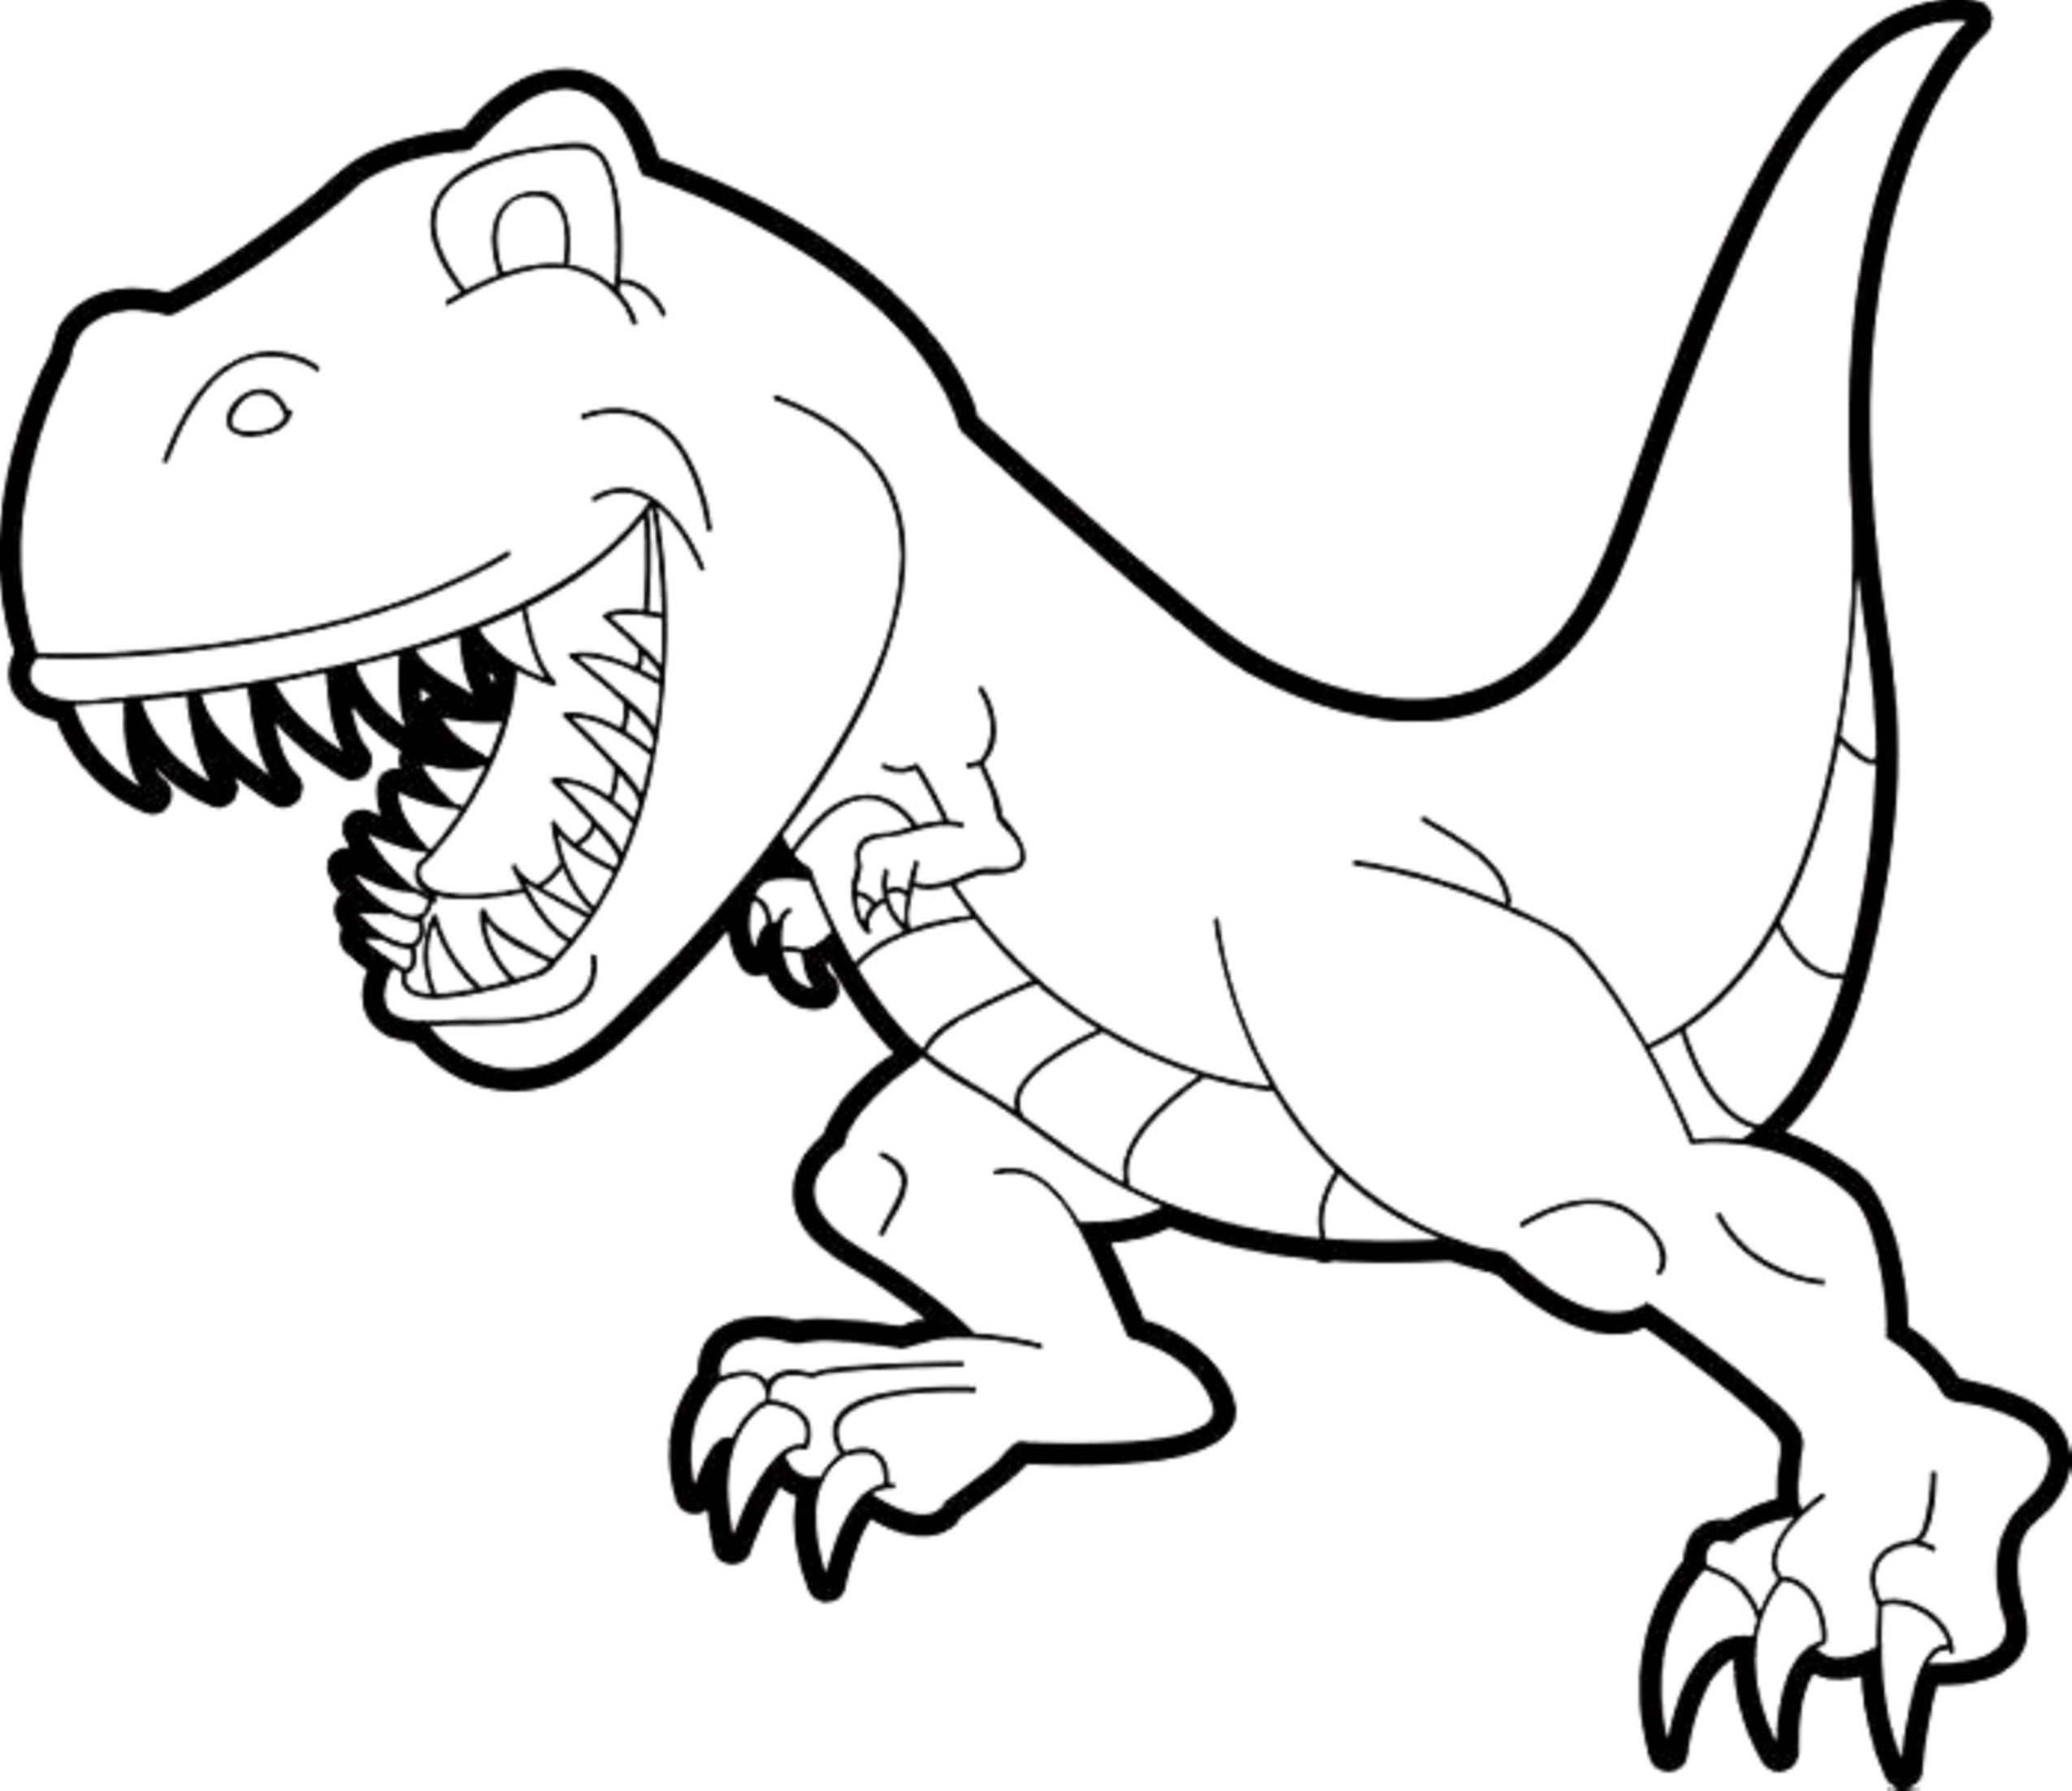 dinosaur images to colour dinosaur coloring pages to download and print for free dinosaur images to colour